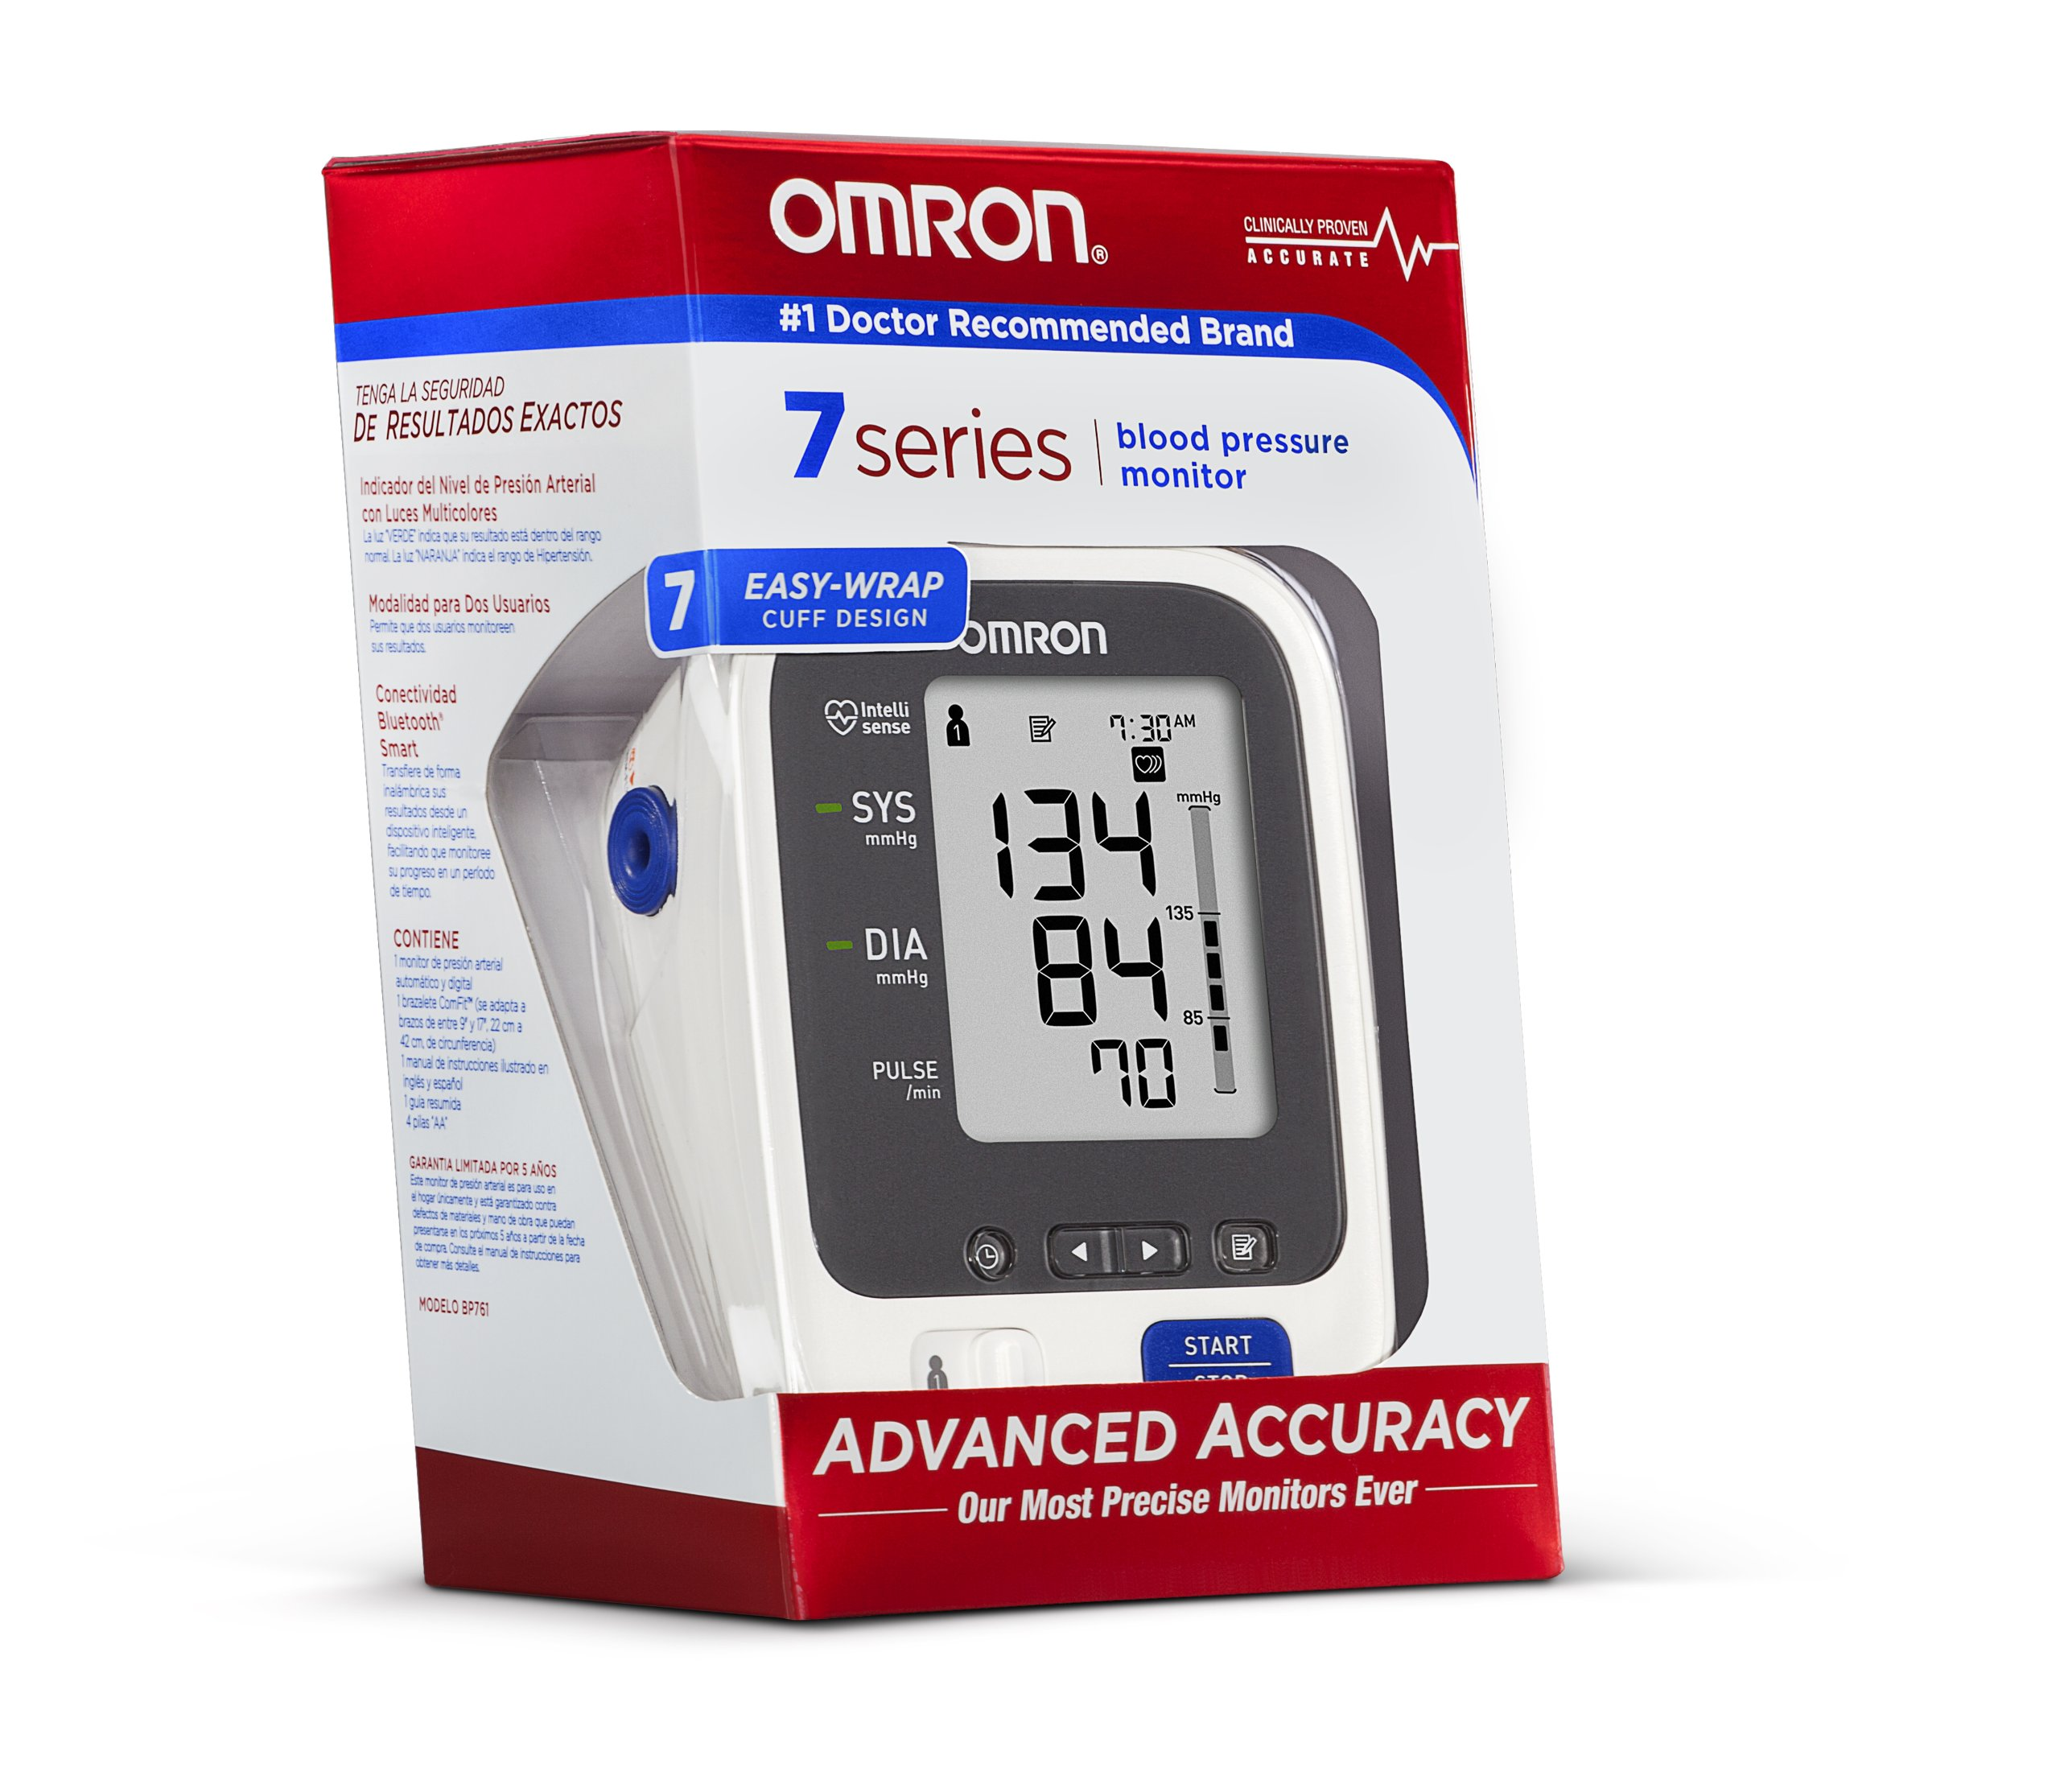 Omron 7 Series Upper Arm Blood Pressure Monitor with Two User Mode (120 Reading Memory) by Omron (Image #3)